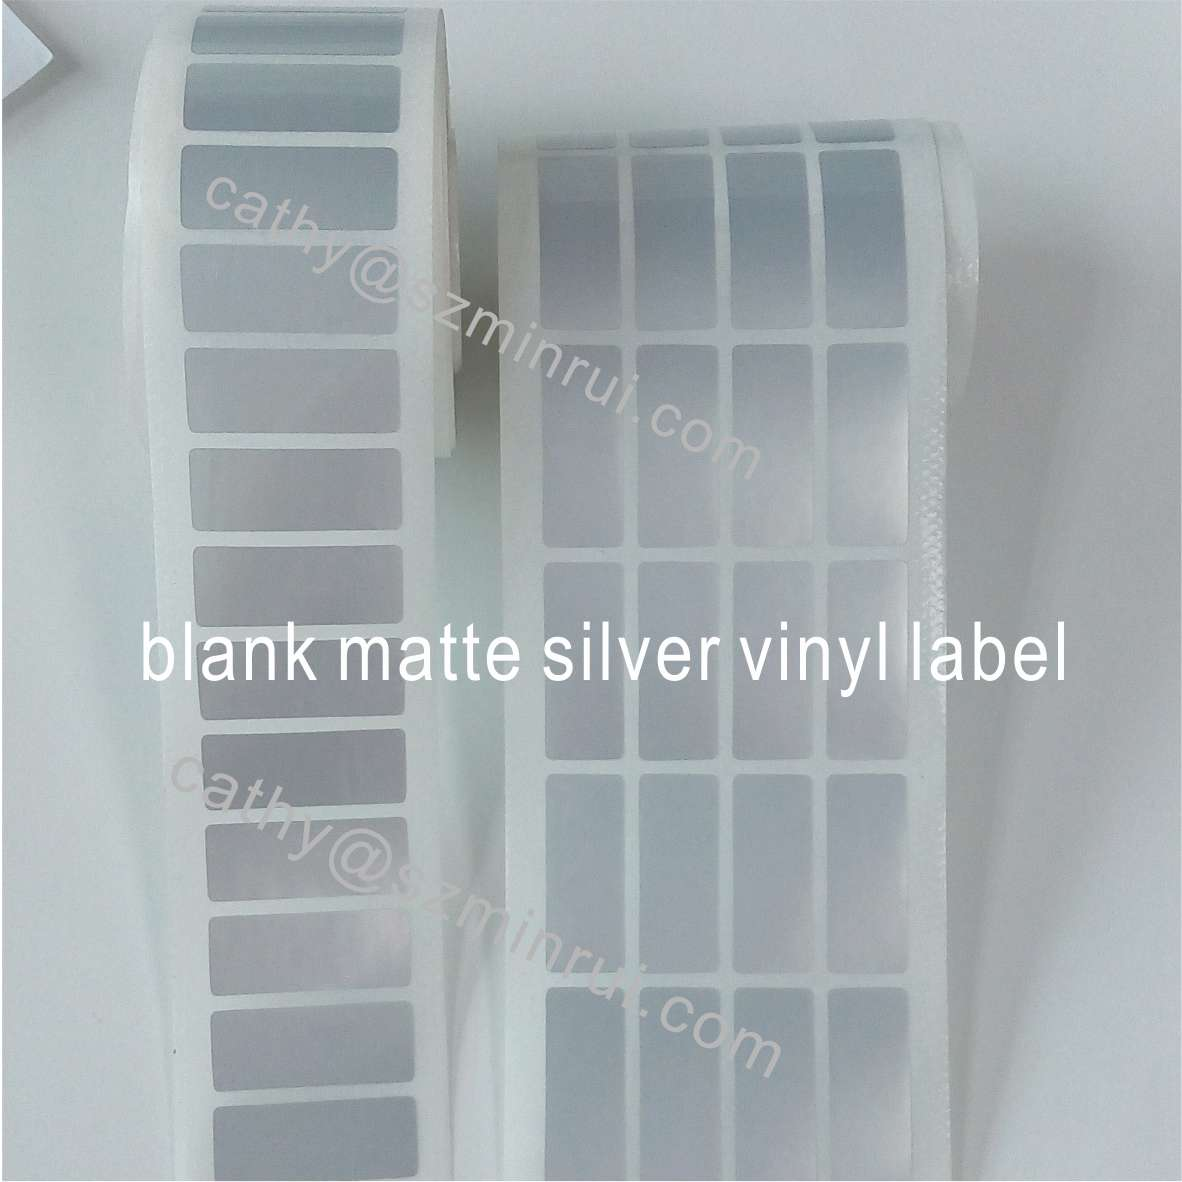 China manufacture self adhesive sticker labels on a roll free design,Self Adhesive vinyl Printable numbered blank labels in roll